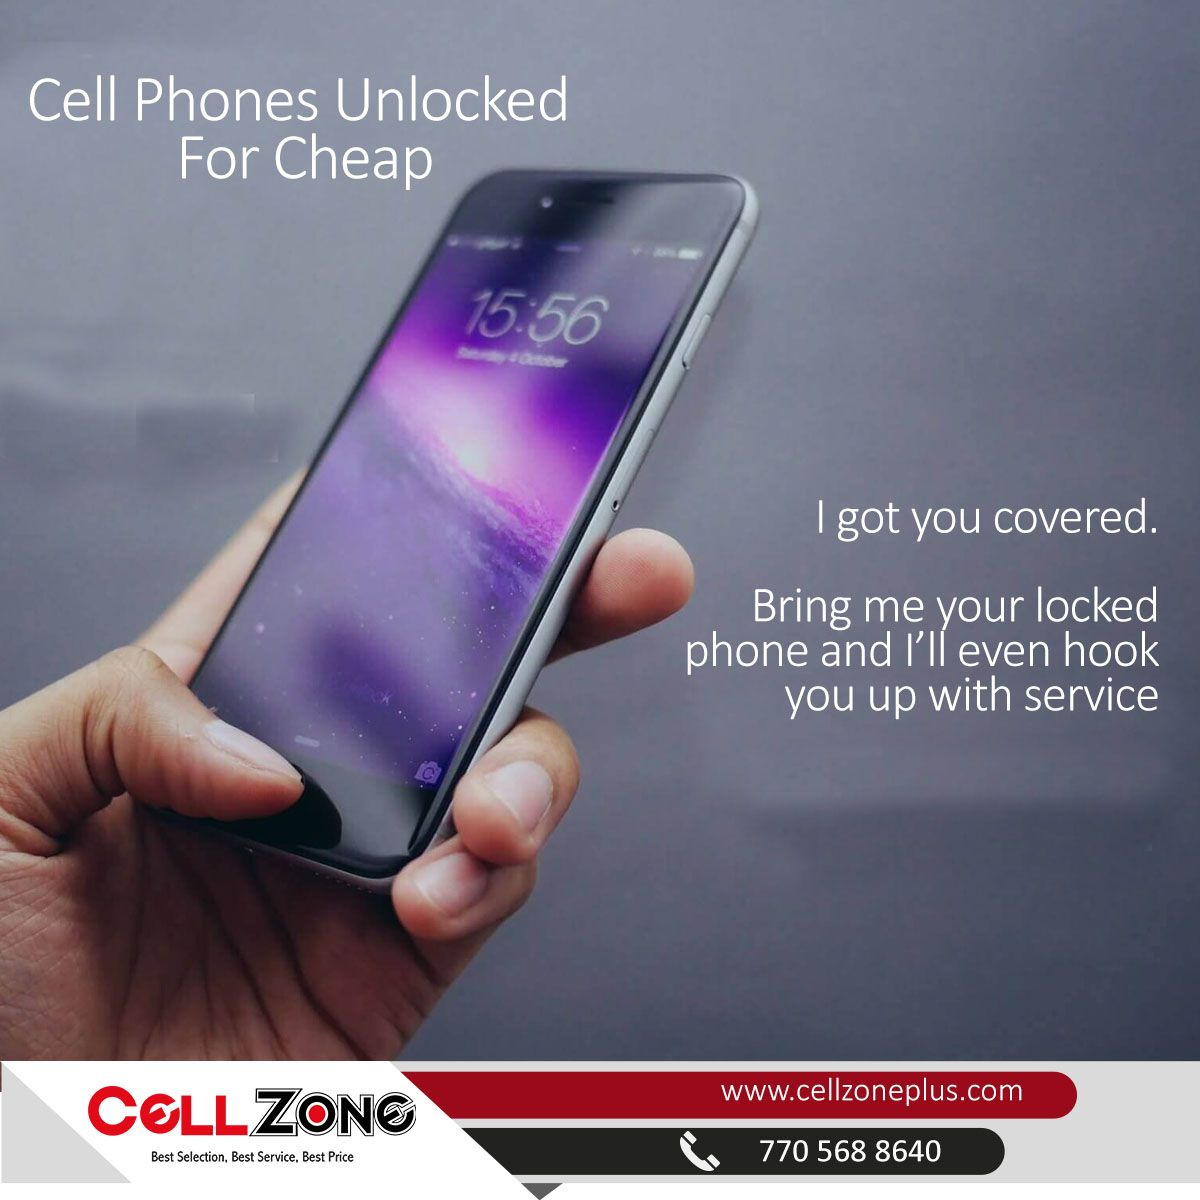 cell phones unlocked for cheap i got you covered bring me your locked phone